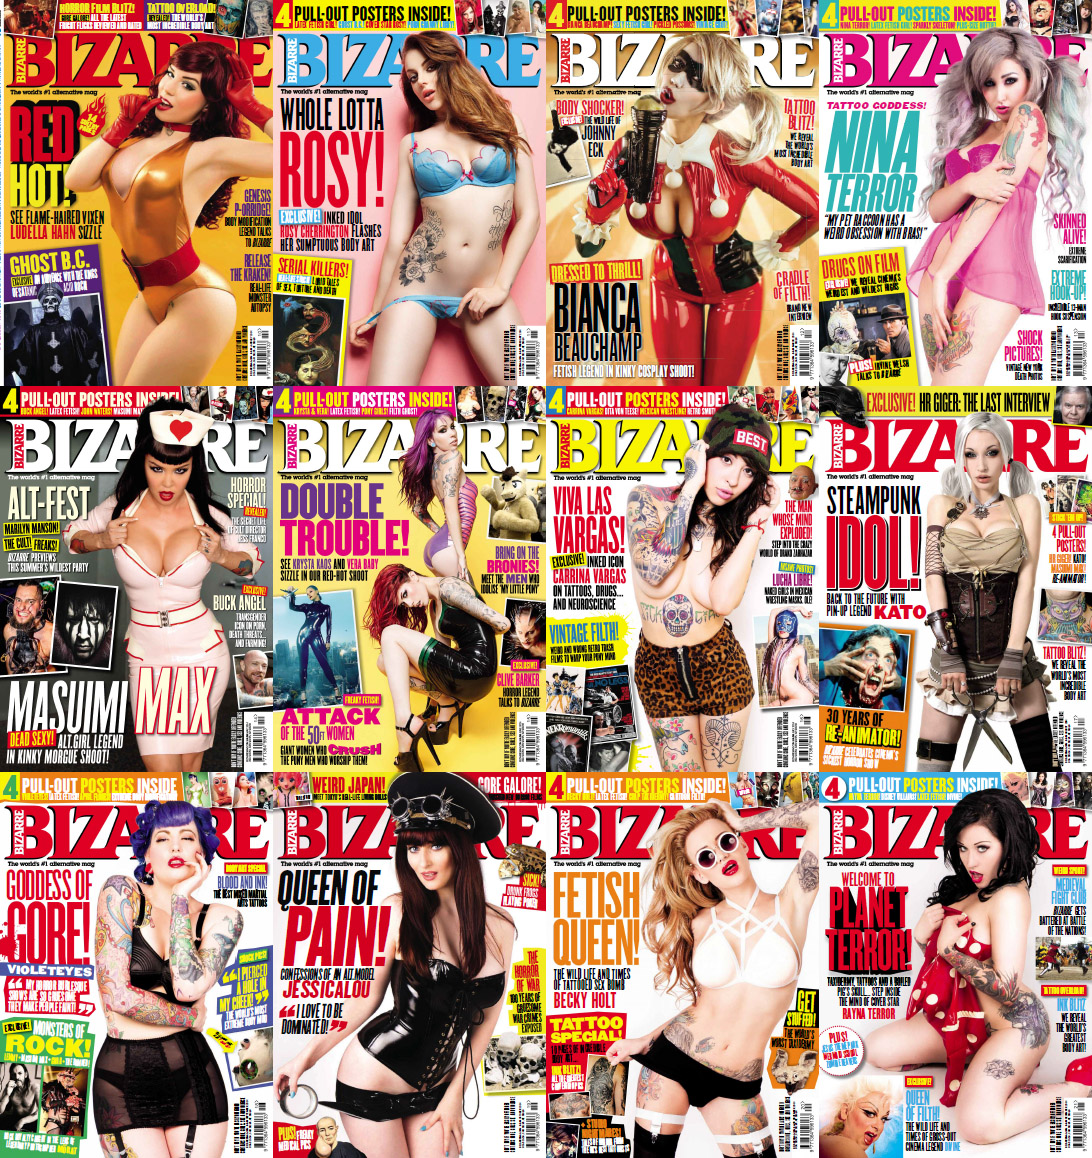 Bizarre UK Magazine - Full Year 2014 Issues Collection free download